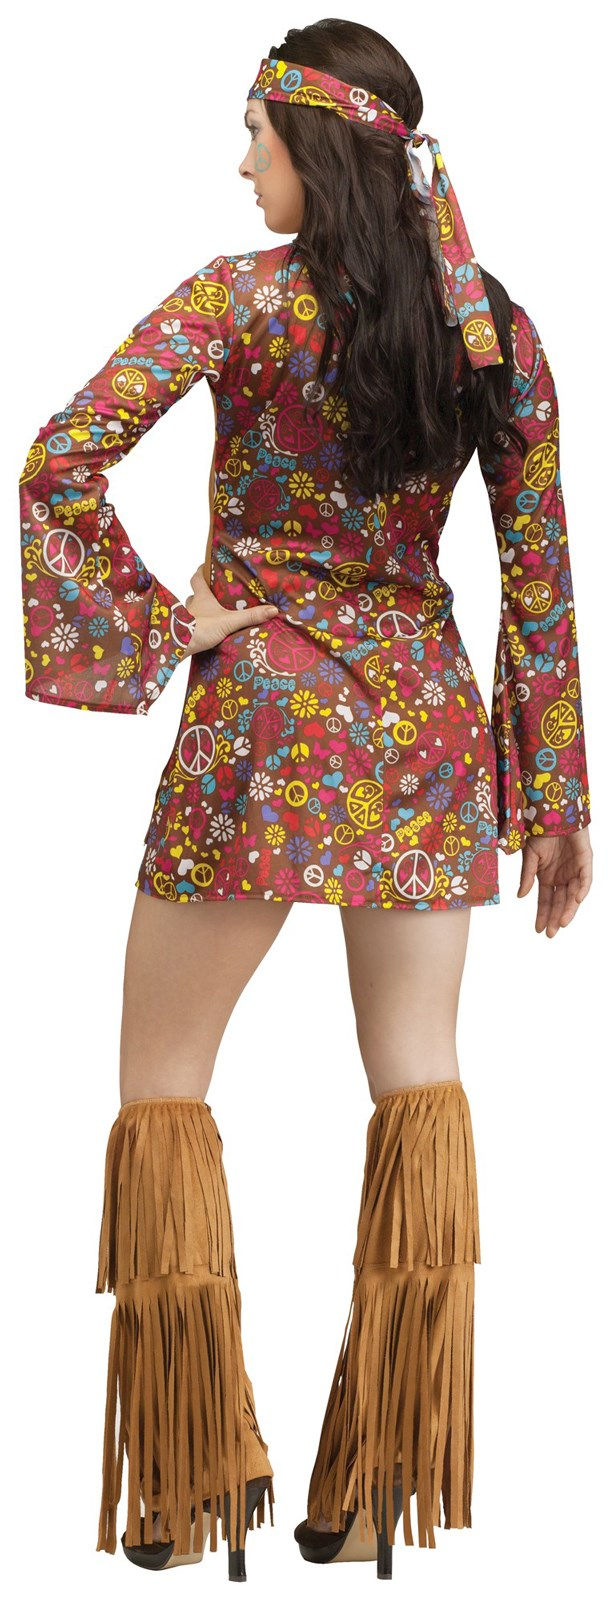 Peace And Love Hippie Costume For Adults Buycostumes Com